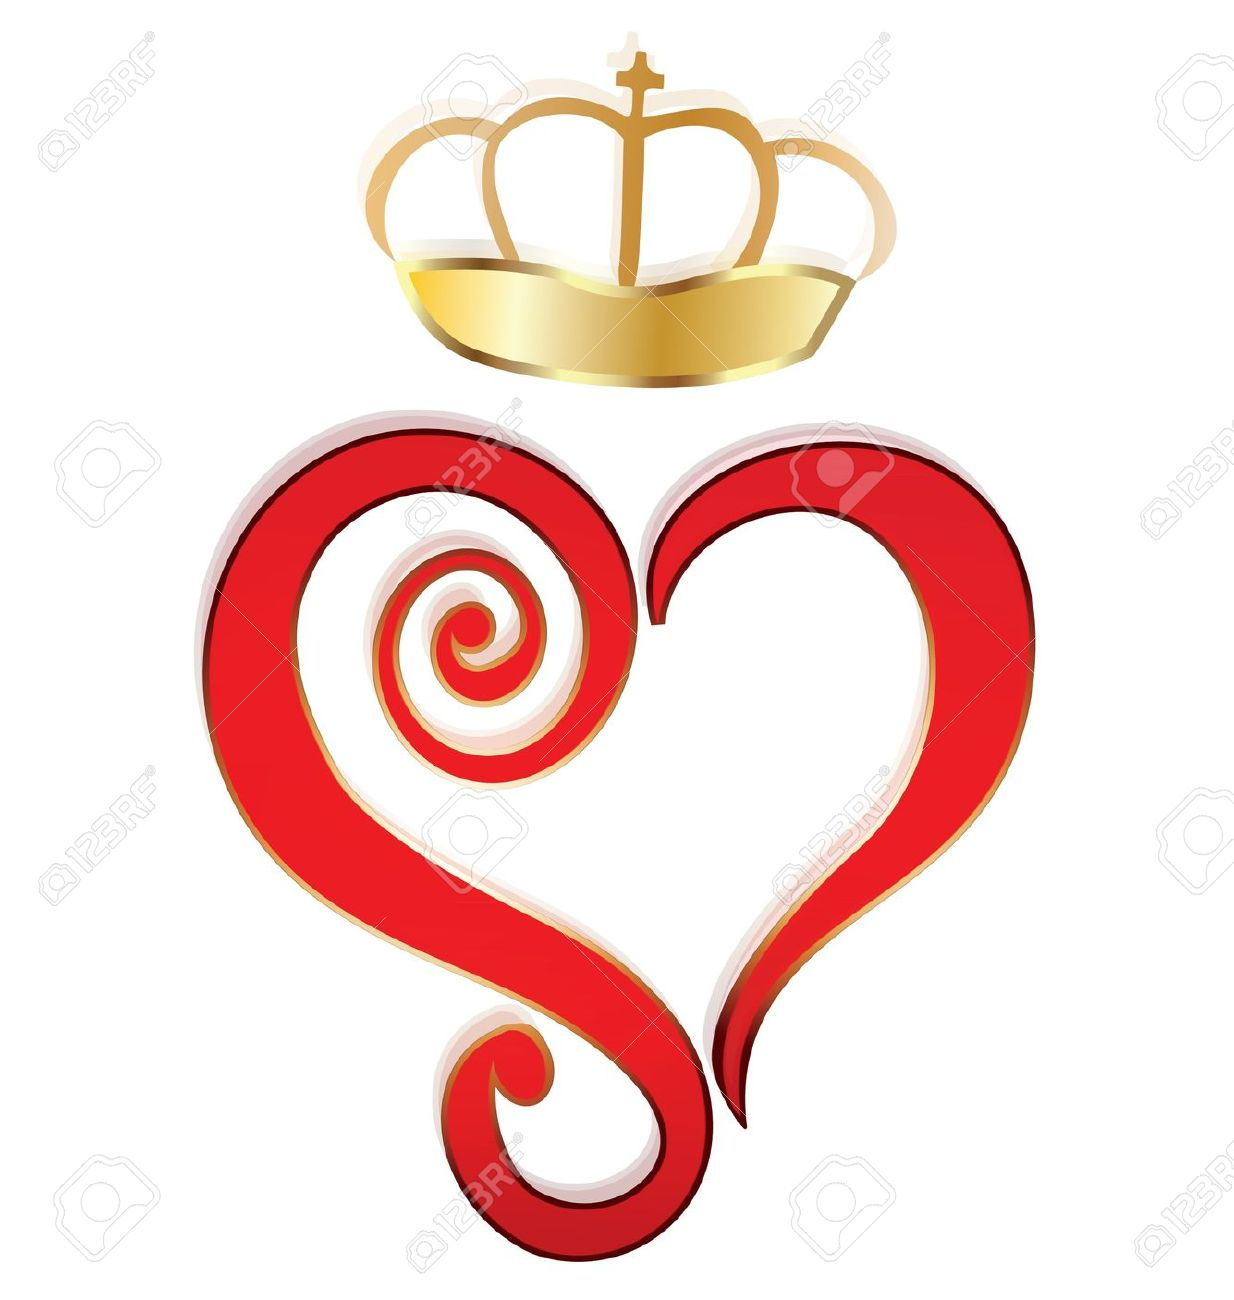 Queen of hearts crown clipart graphic library library Queen of hearts crown clipart - ClipartFest graphic library library